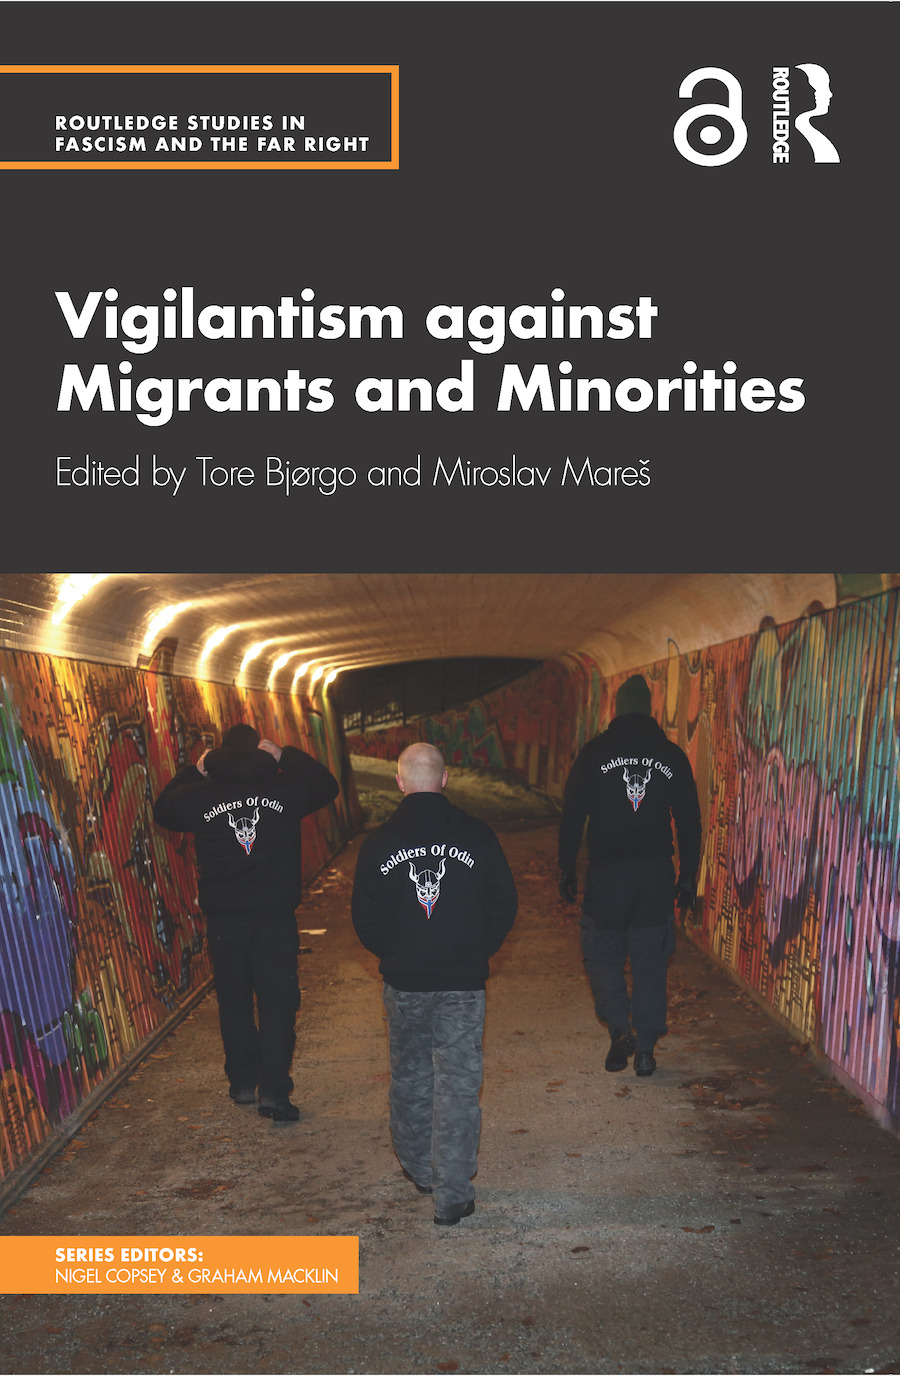 Vigilantism against Migrants and Minorities (OPEN ACCESS) book cover